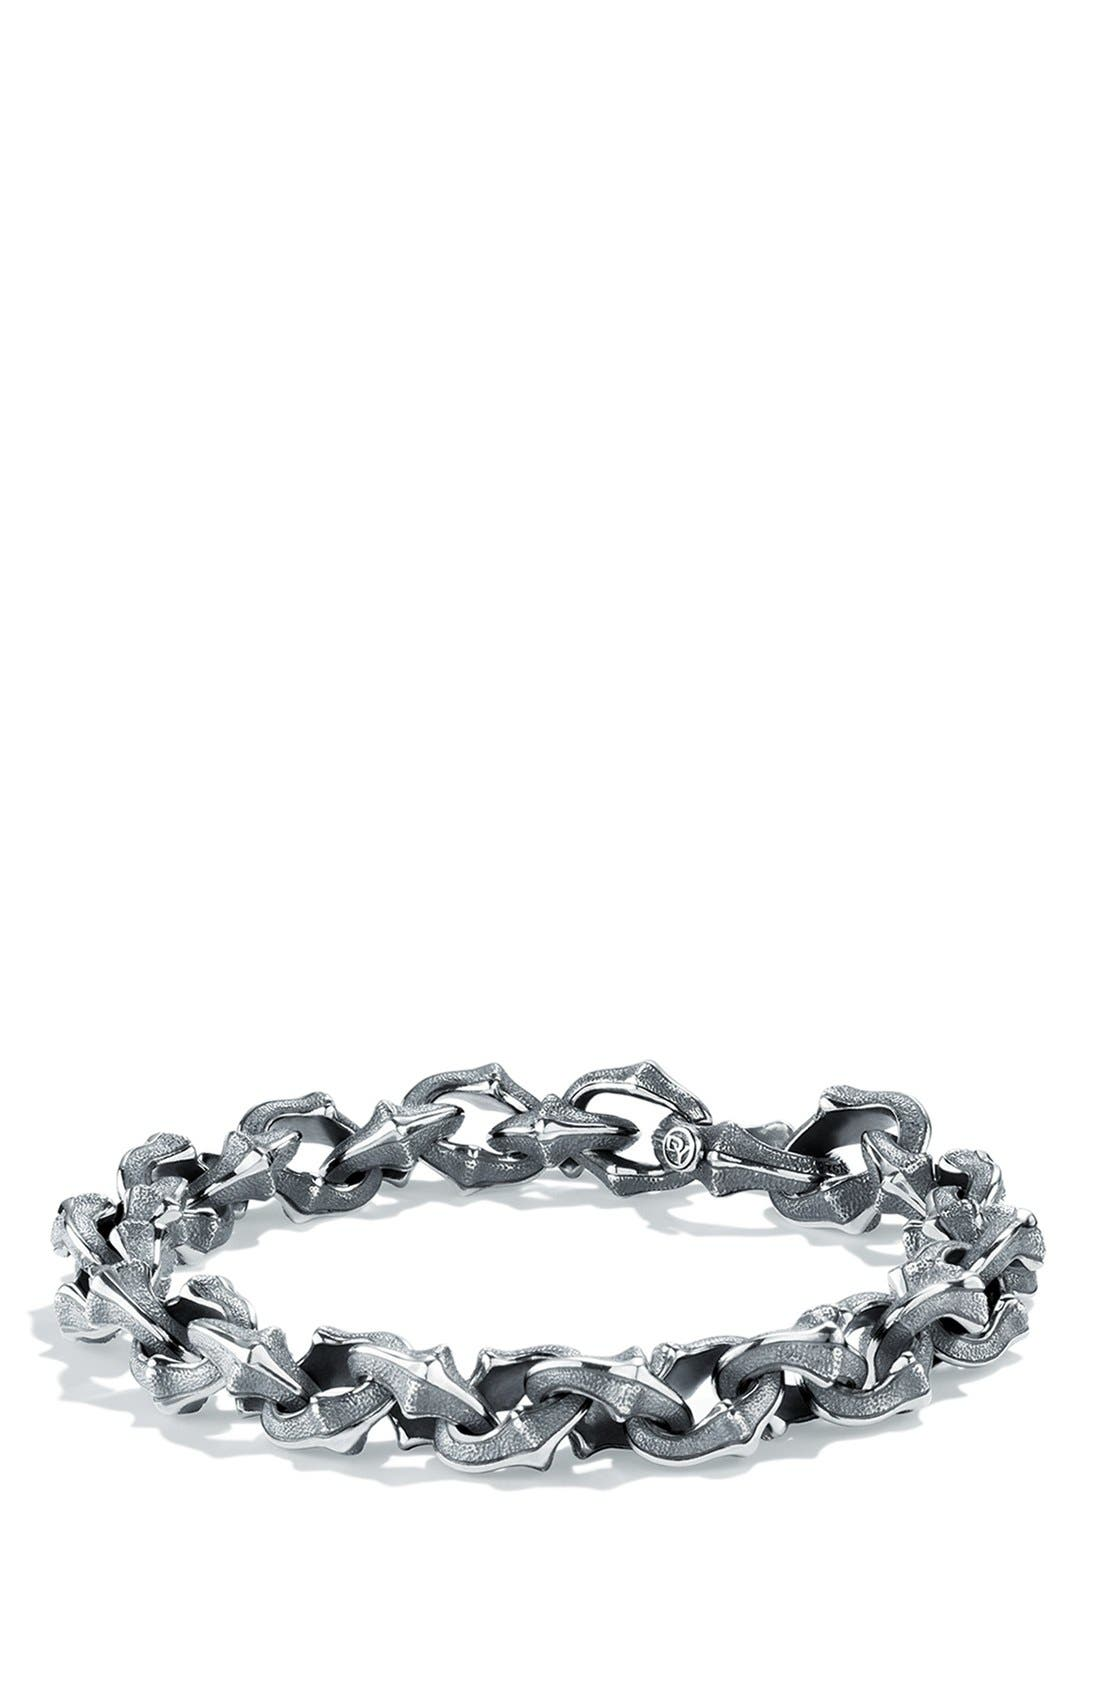 David Yurman 'Armory' Small Link Bracelet